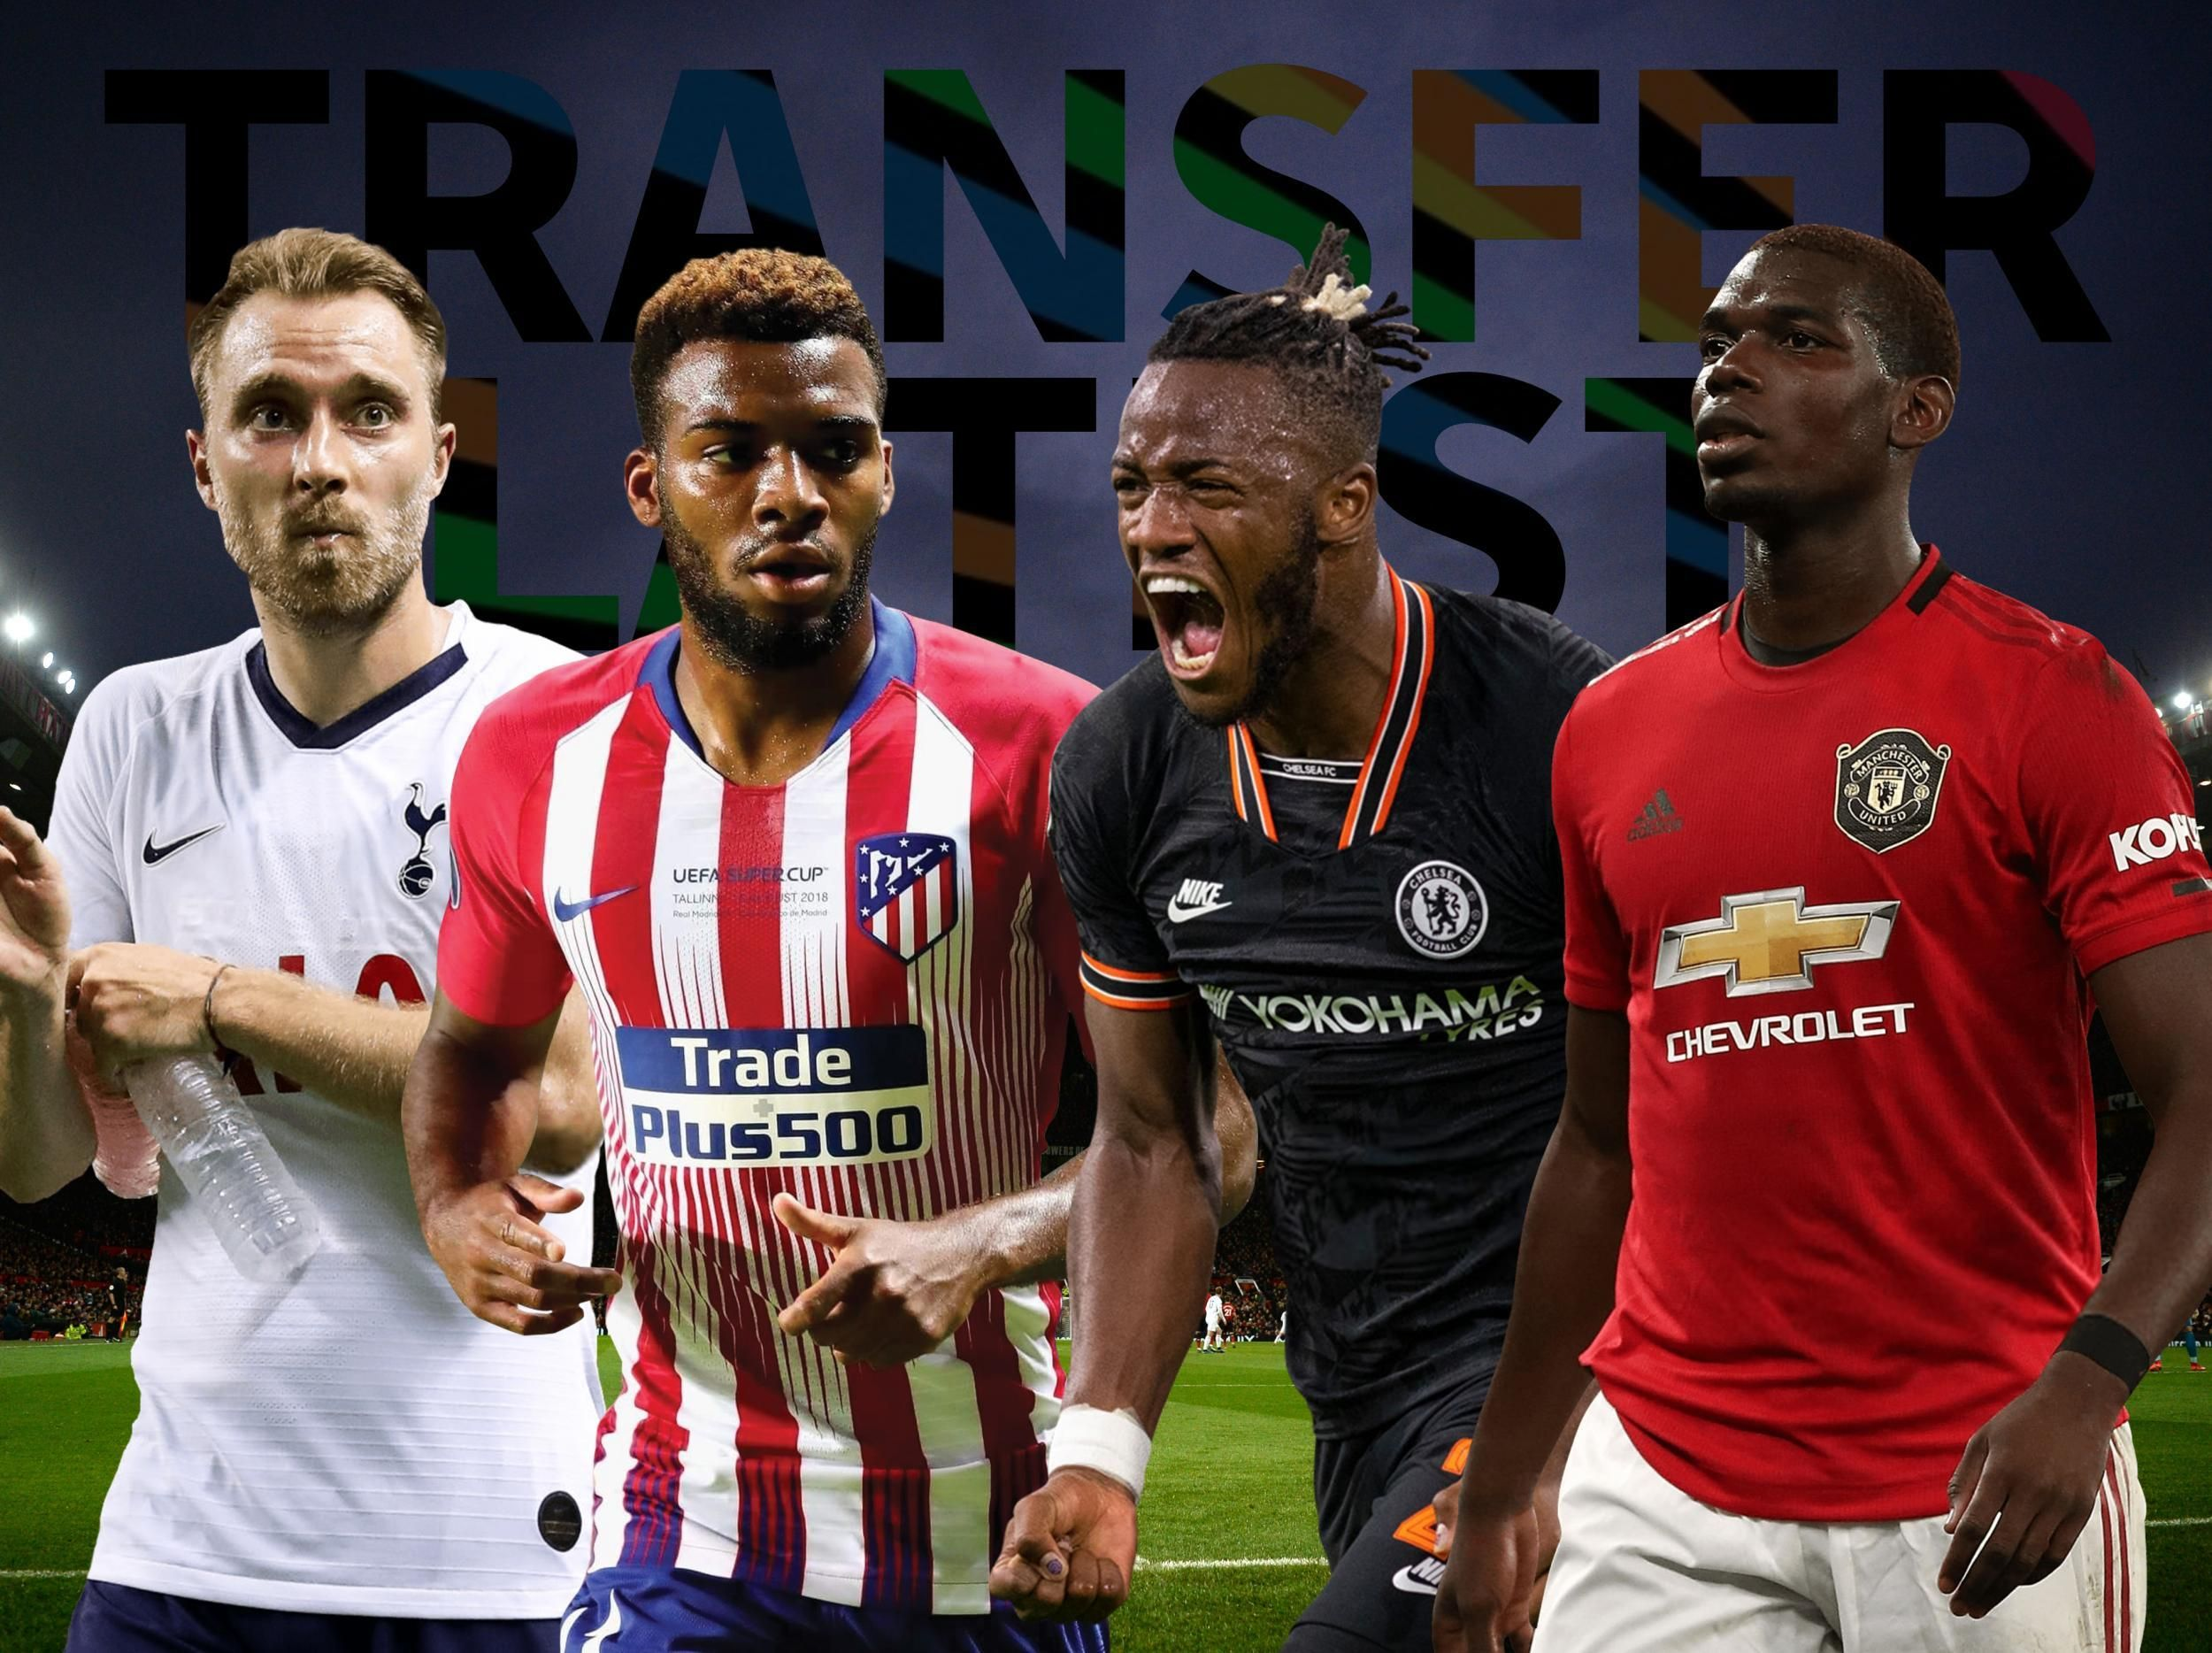 Transfer News Live Man Utd Arsenal And Liverpool Rumours And Done Deals At 12pm In 2020 Transfer News Liverpool Arsenal